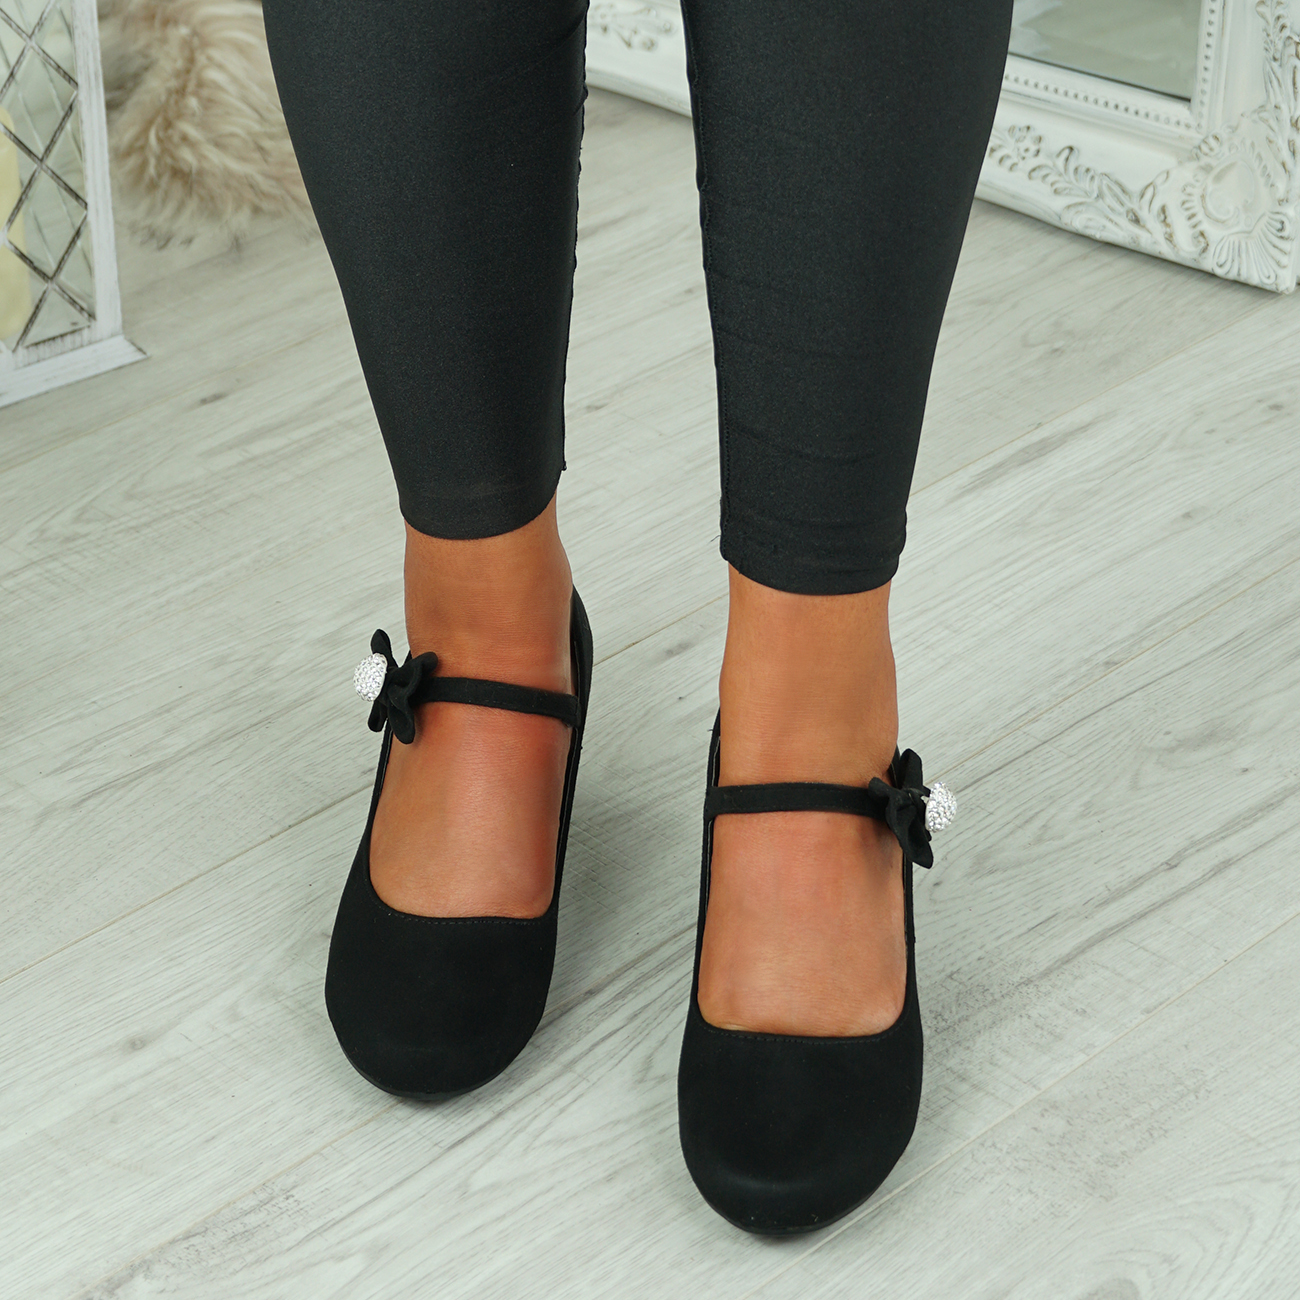 NEW-WOMENS-BLOCK-HEEL-PUMPS-BOW-BUCKLE-STRAP-ROUNDED-TOE-CASUAL-SHOES-SIZE thumbnail 7